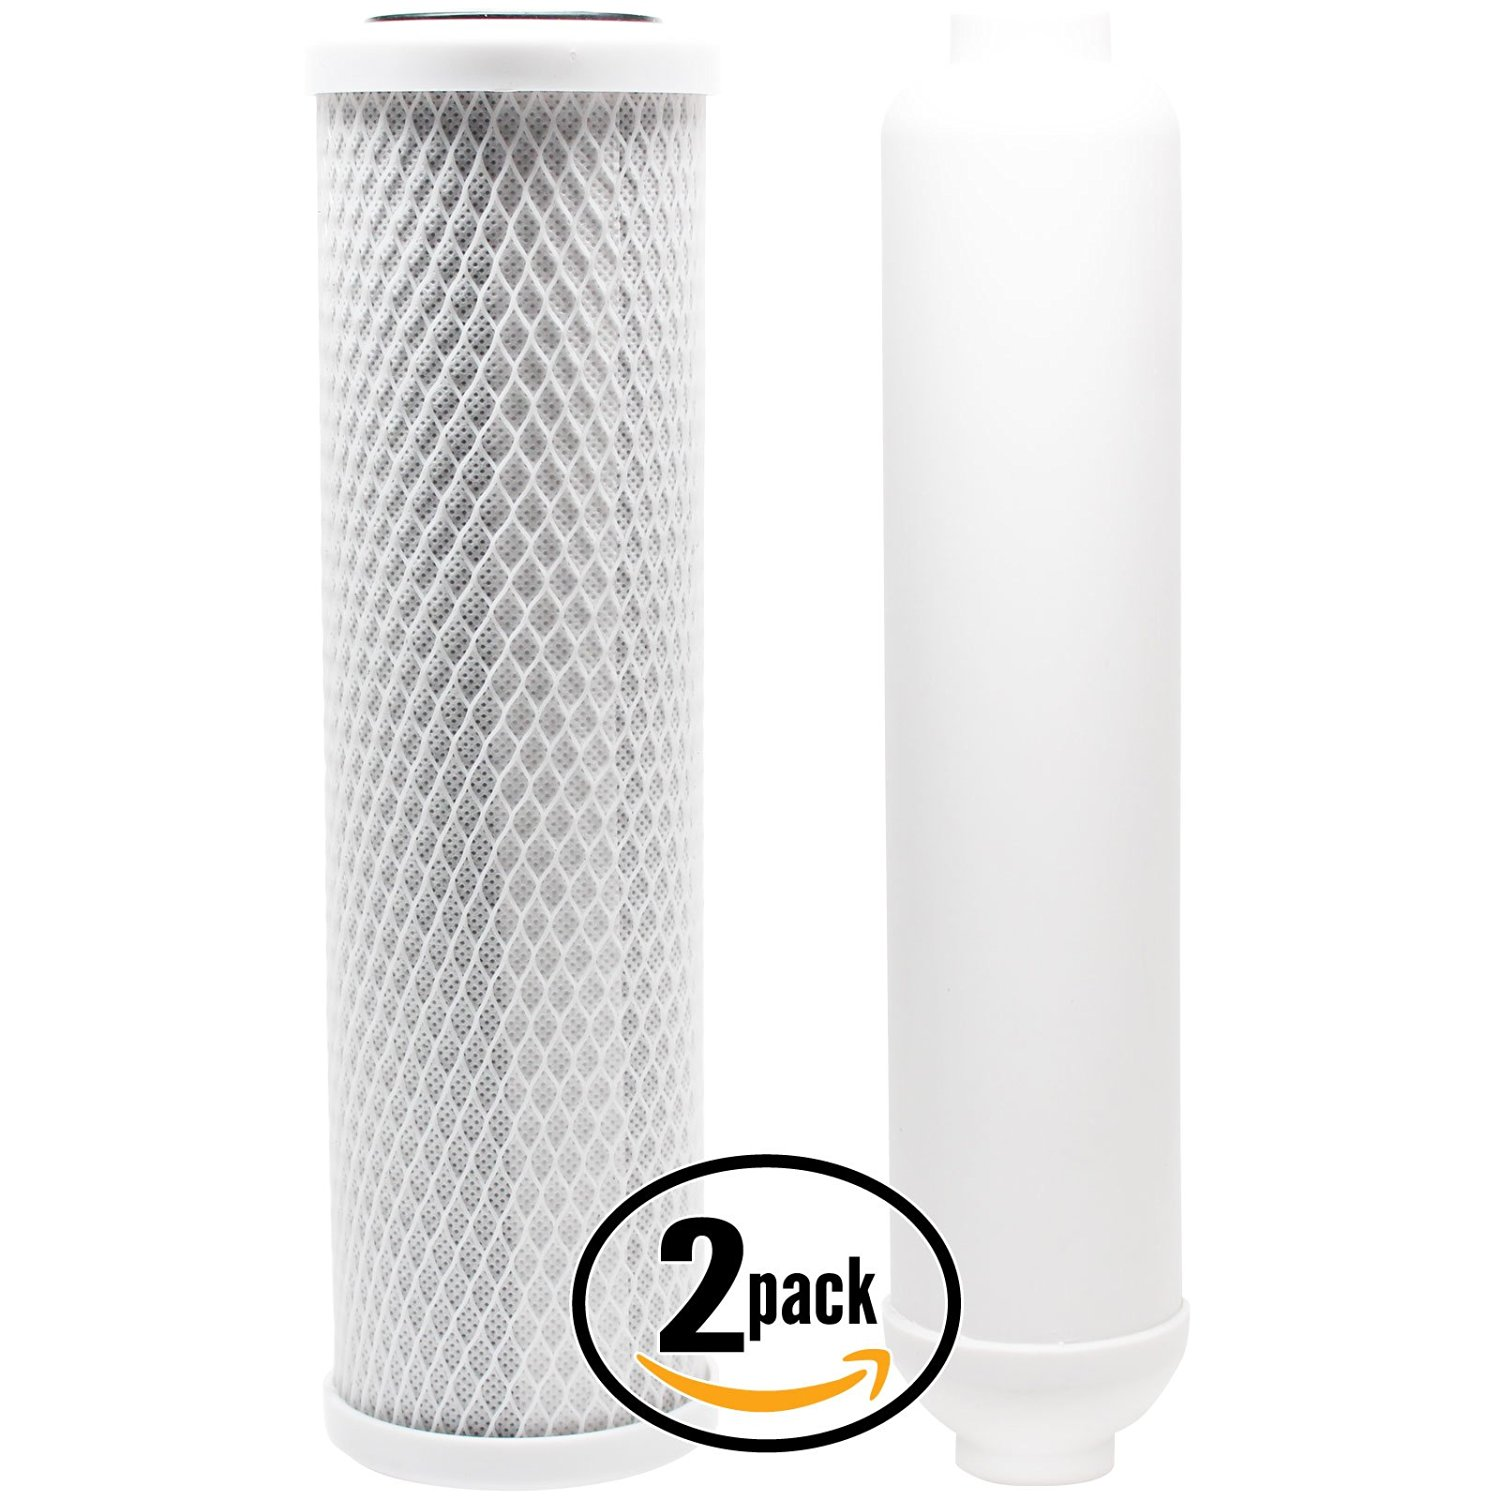 2-Pack Denali Pure Universal 10 inch Carbon Block, Inline Filter - Compatible with Crystal Quest CQE-RO-00105, Crystal Quest CQE-RO-00106, Crystal Quest CQE-RO-00103, Crystal Quest CQE-RO-00107